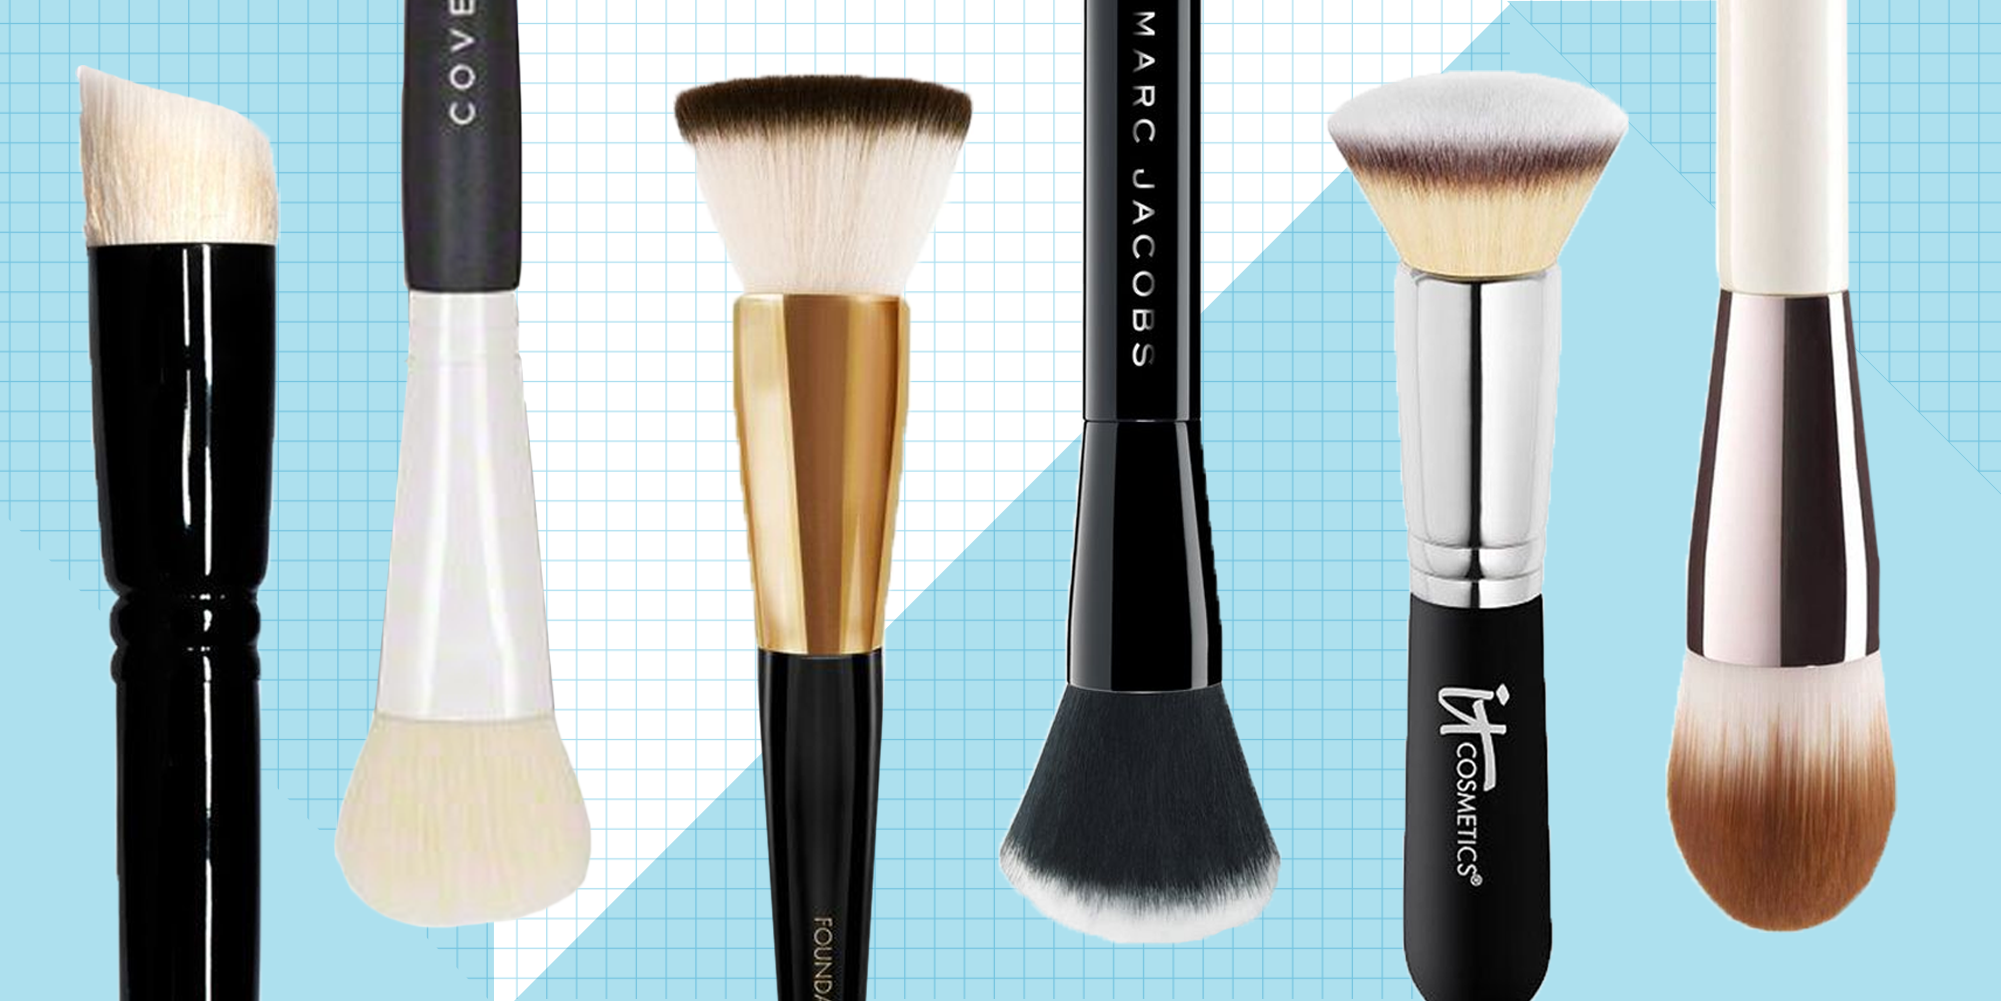 6 Best Foundation Brushes, According to Beauty Experts